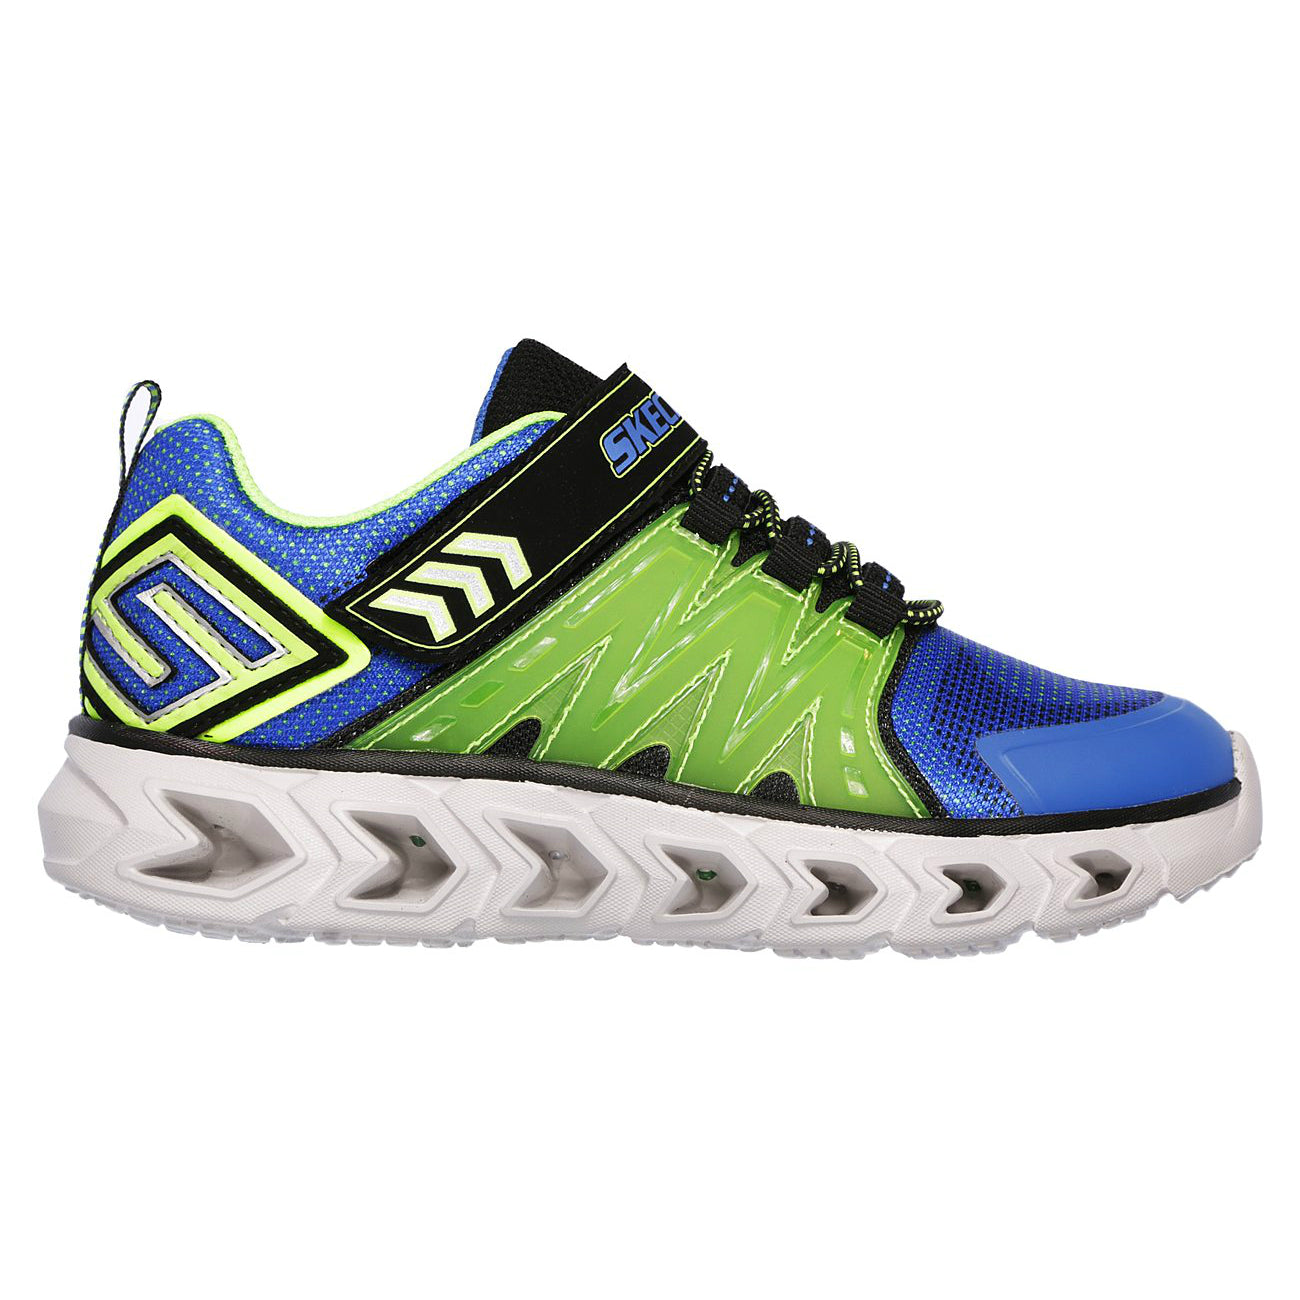 Skechers Blue/Lime Hypno-Flash 2.0 Sneaker